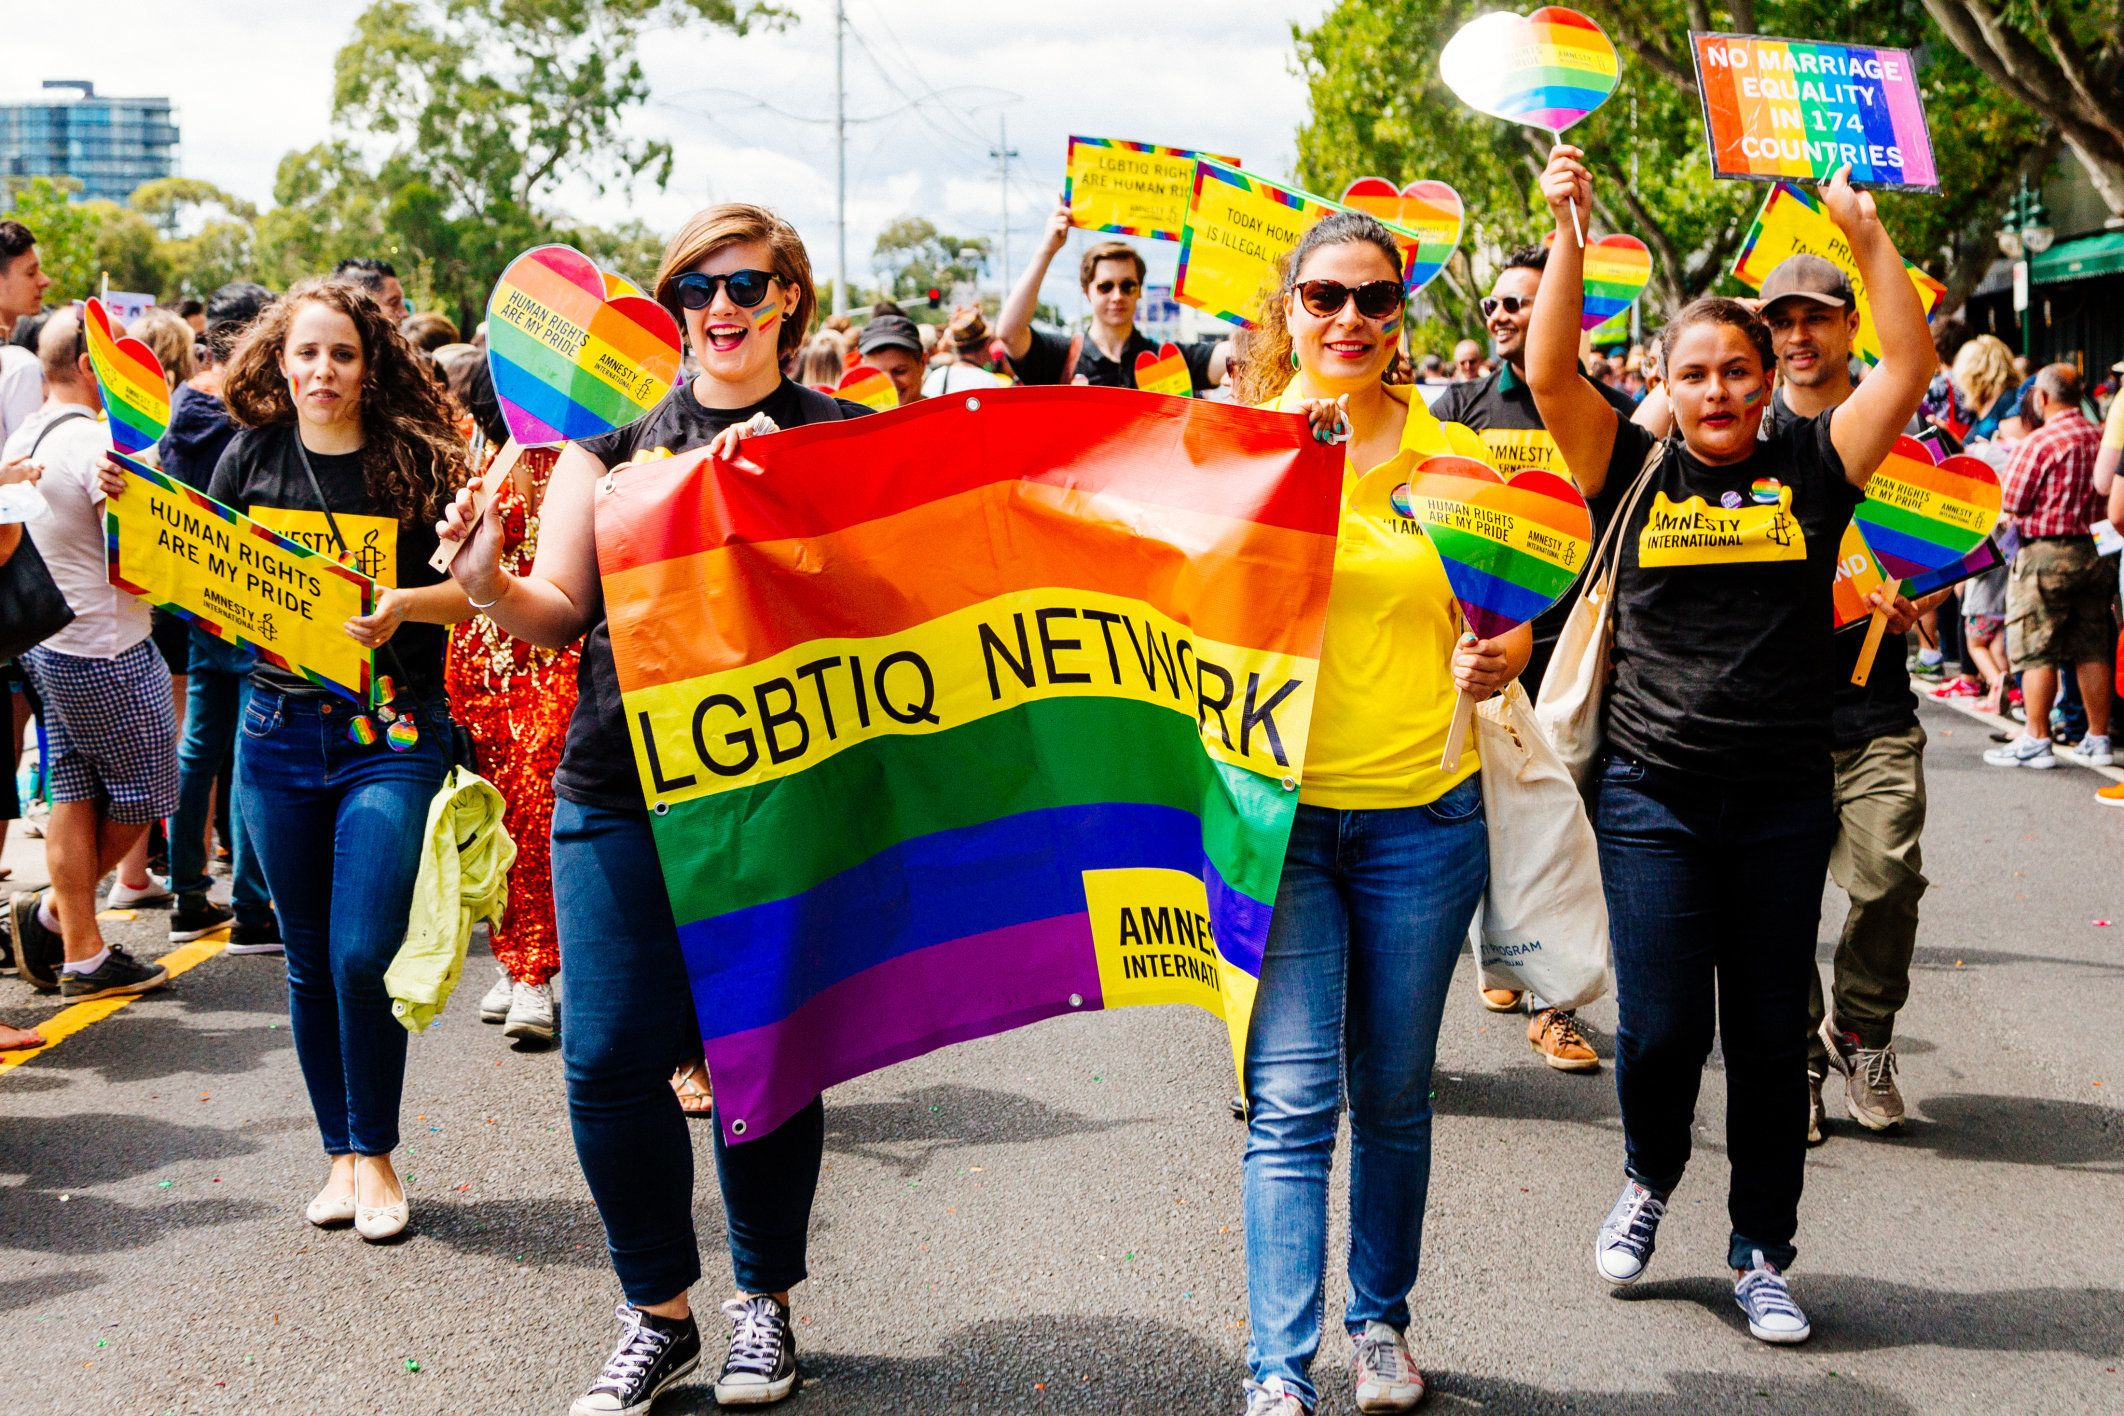 Members of the Amnesty International LGBTIQ network march during the MidSumma festival Pride march in Australia, calling for marriage equality